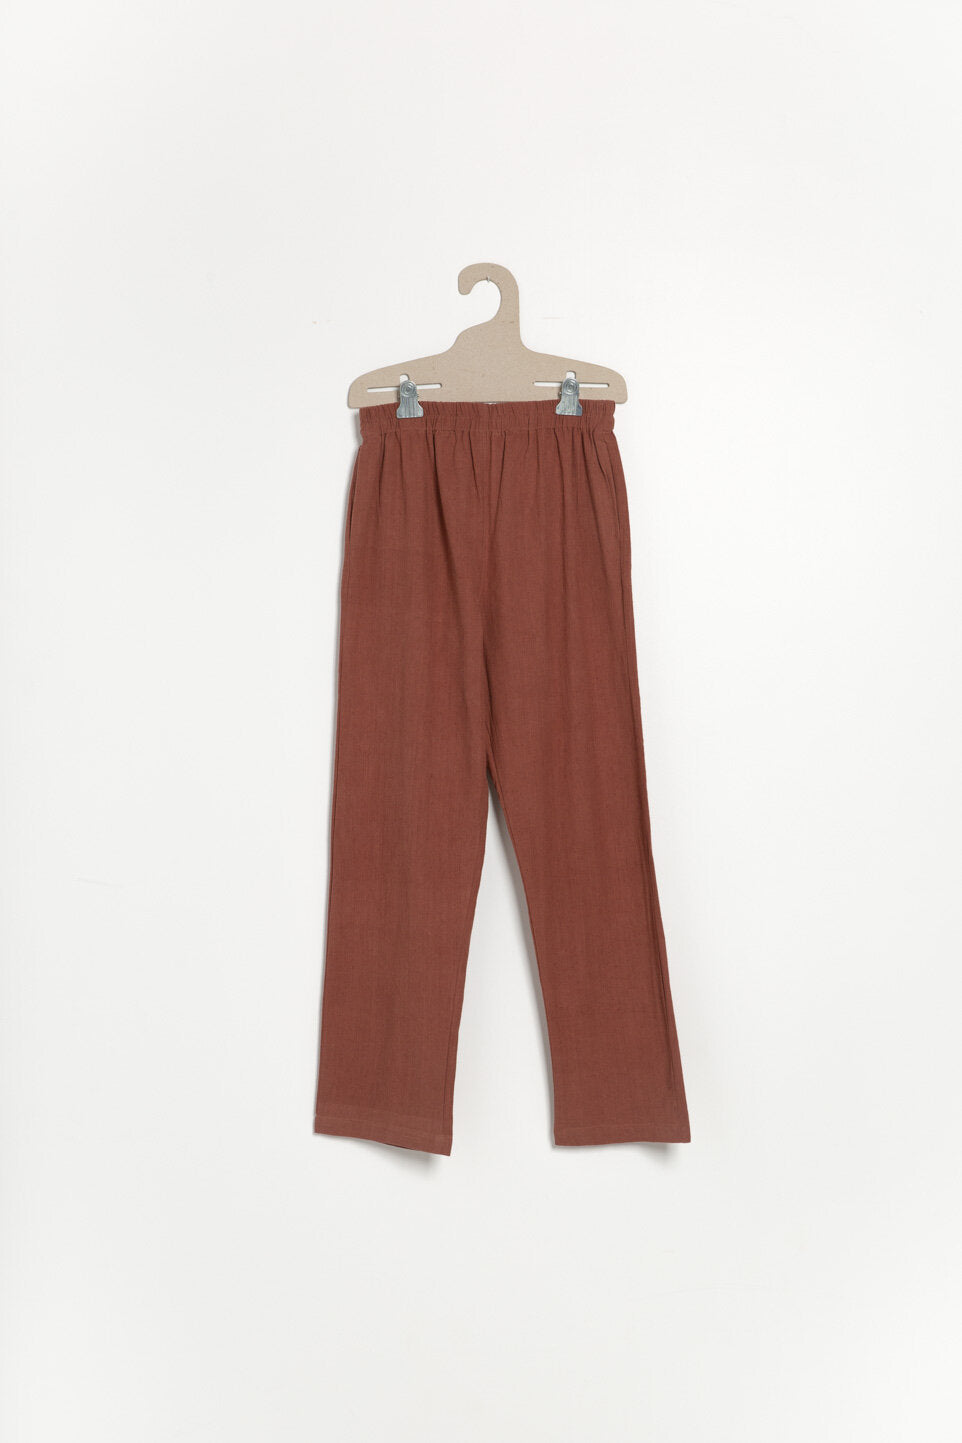 Lounger Pants in Terracotta